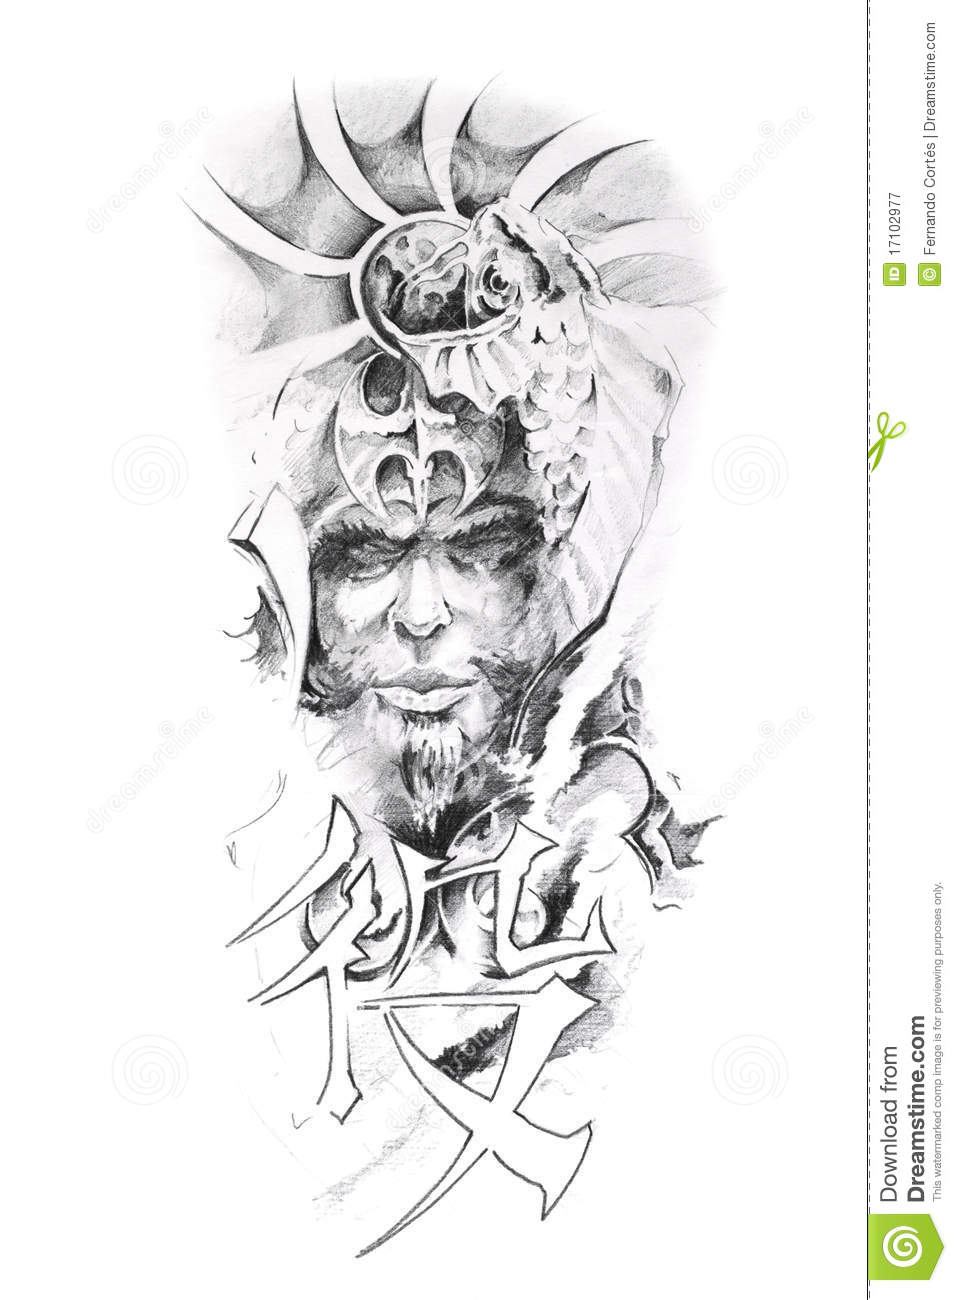 Tattoo Art Sketch Of A Japanese Warrior Royalty Free